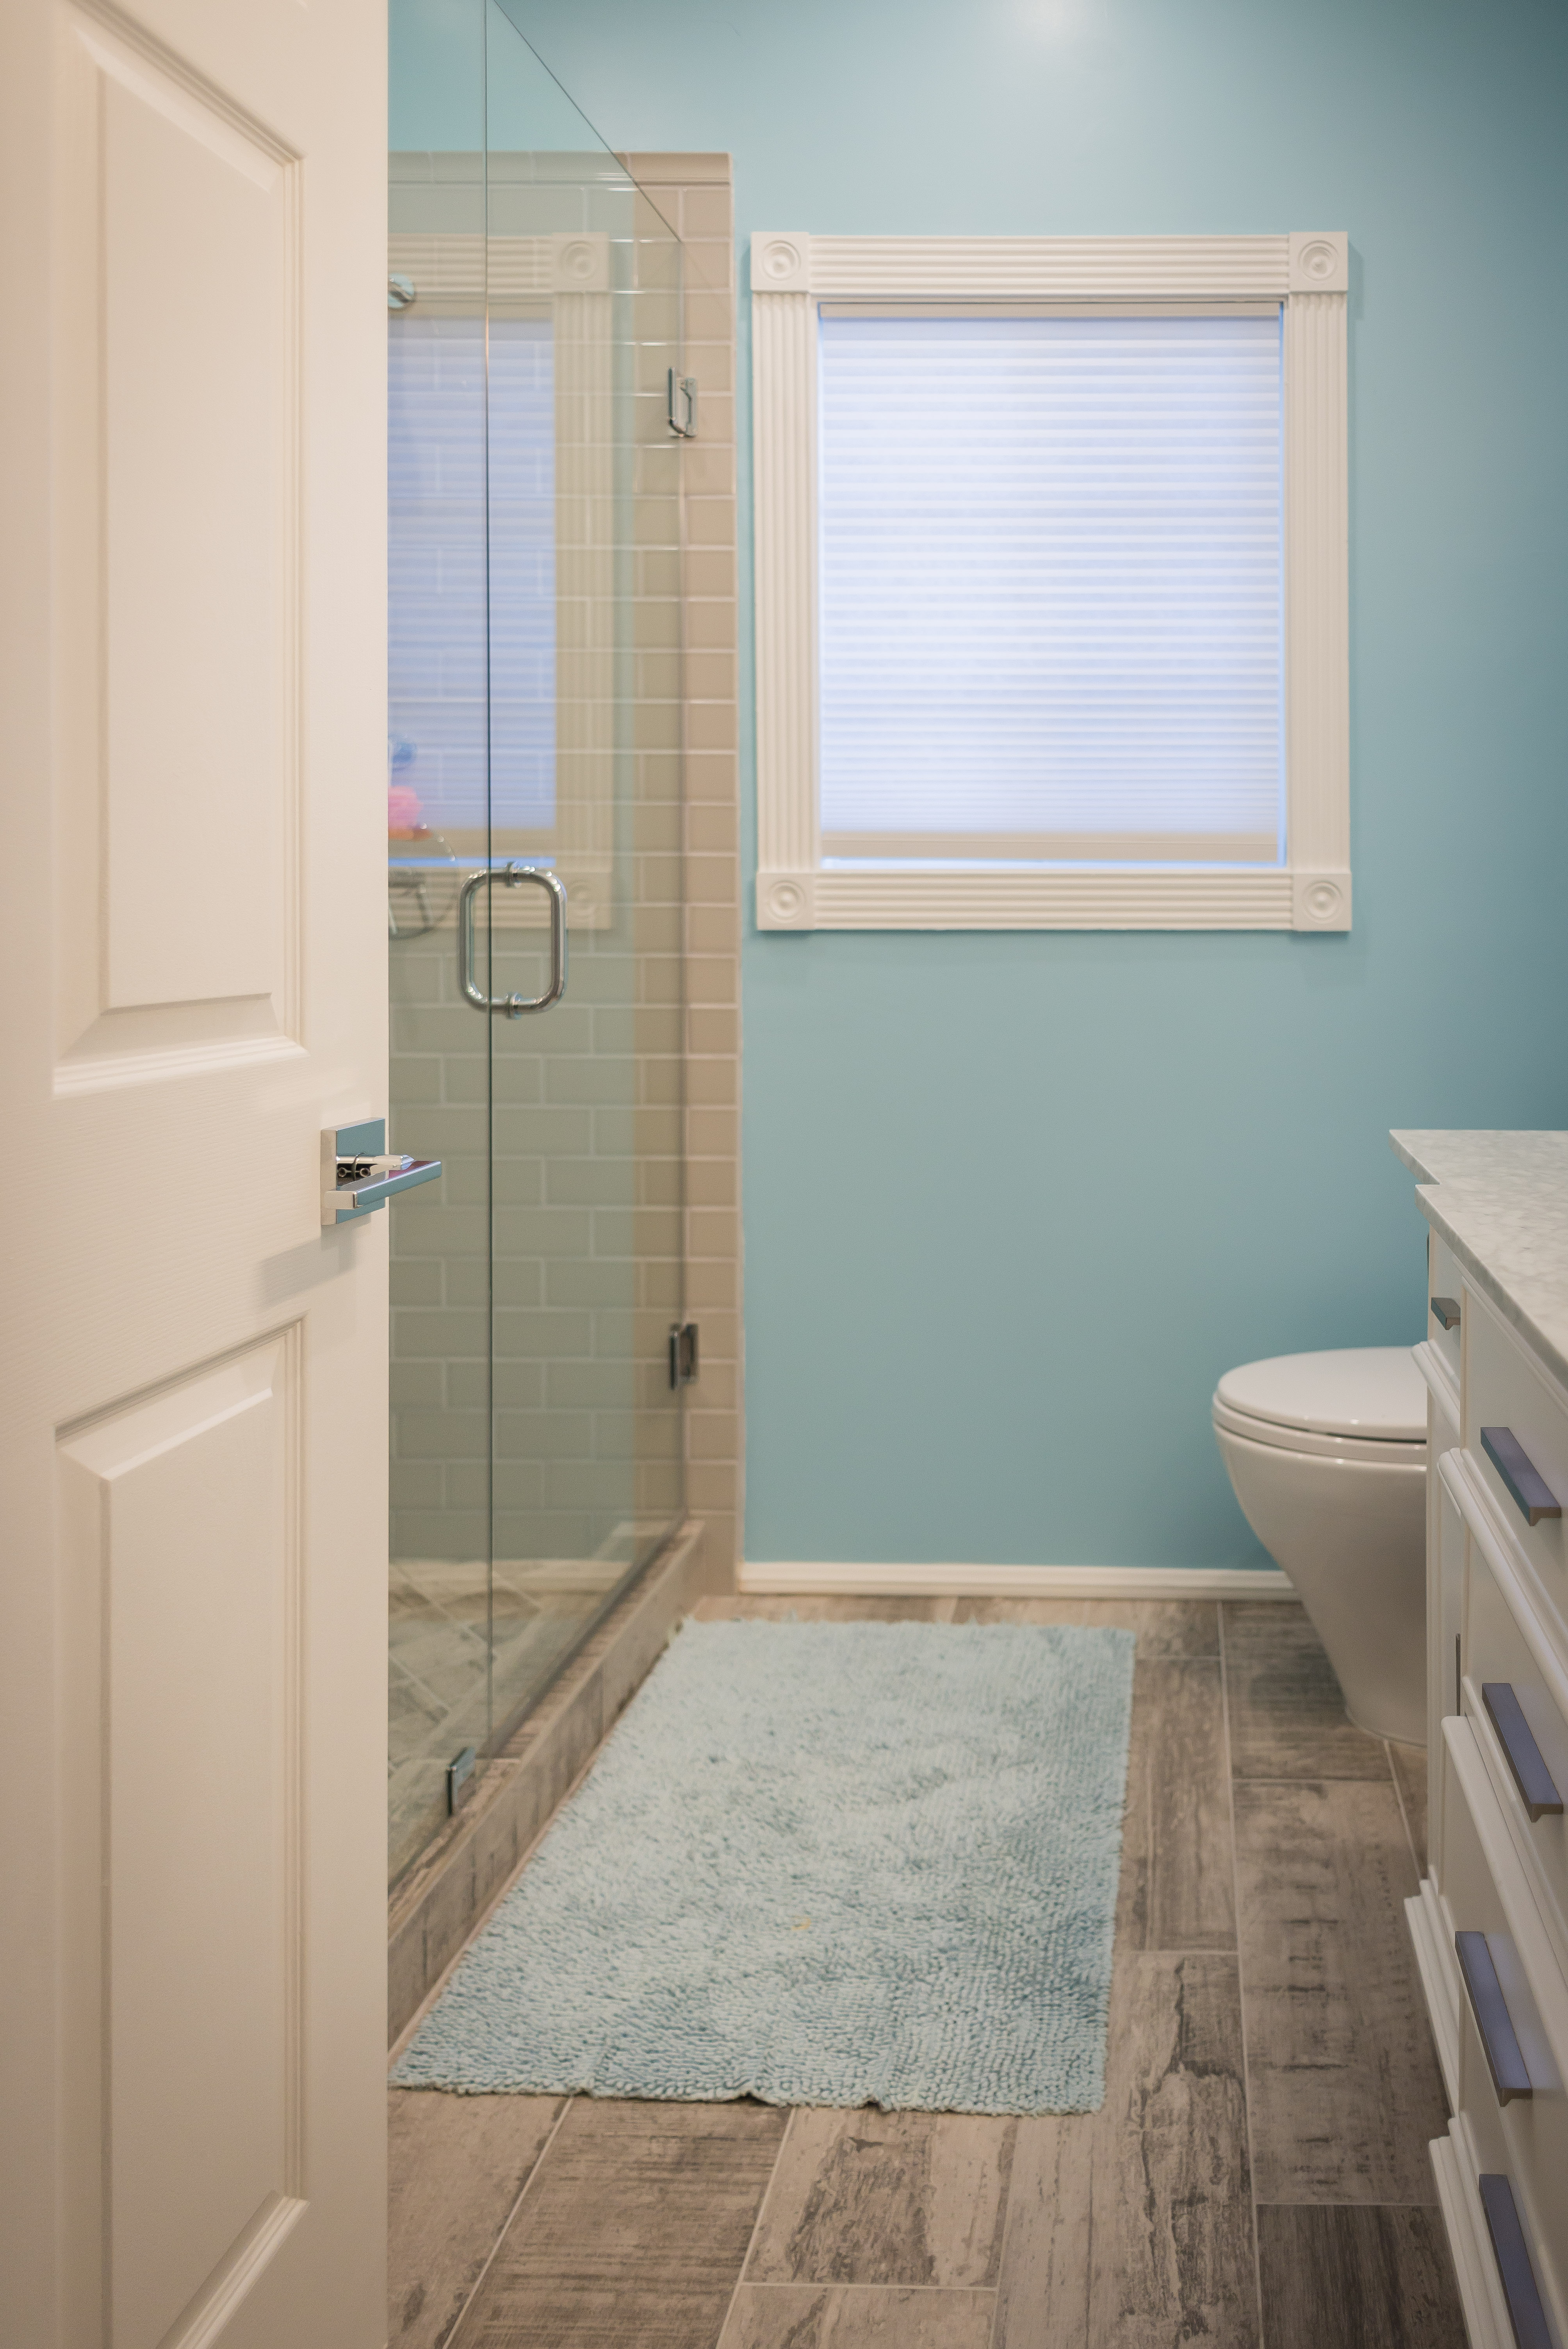 Hightouch Remodeling | CA | Read Reviews + Get a Bid | BuildZoom